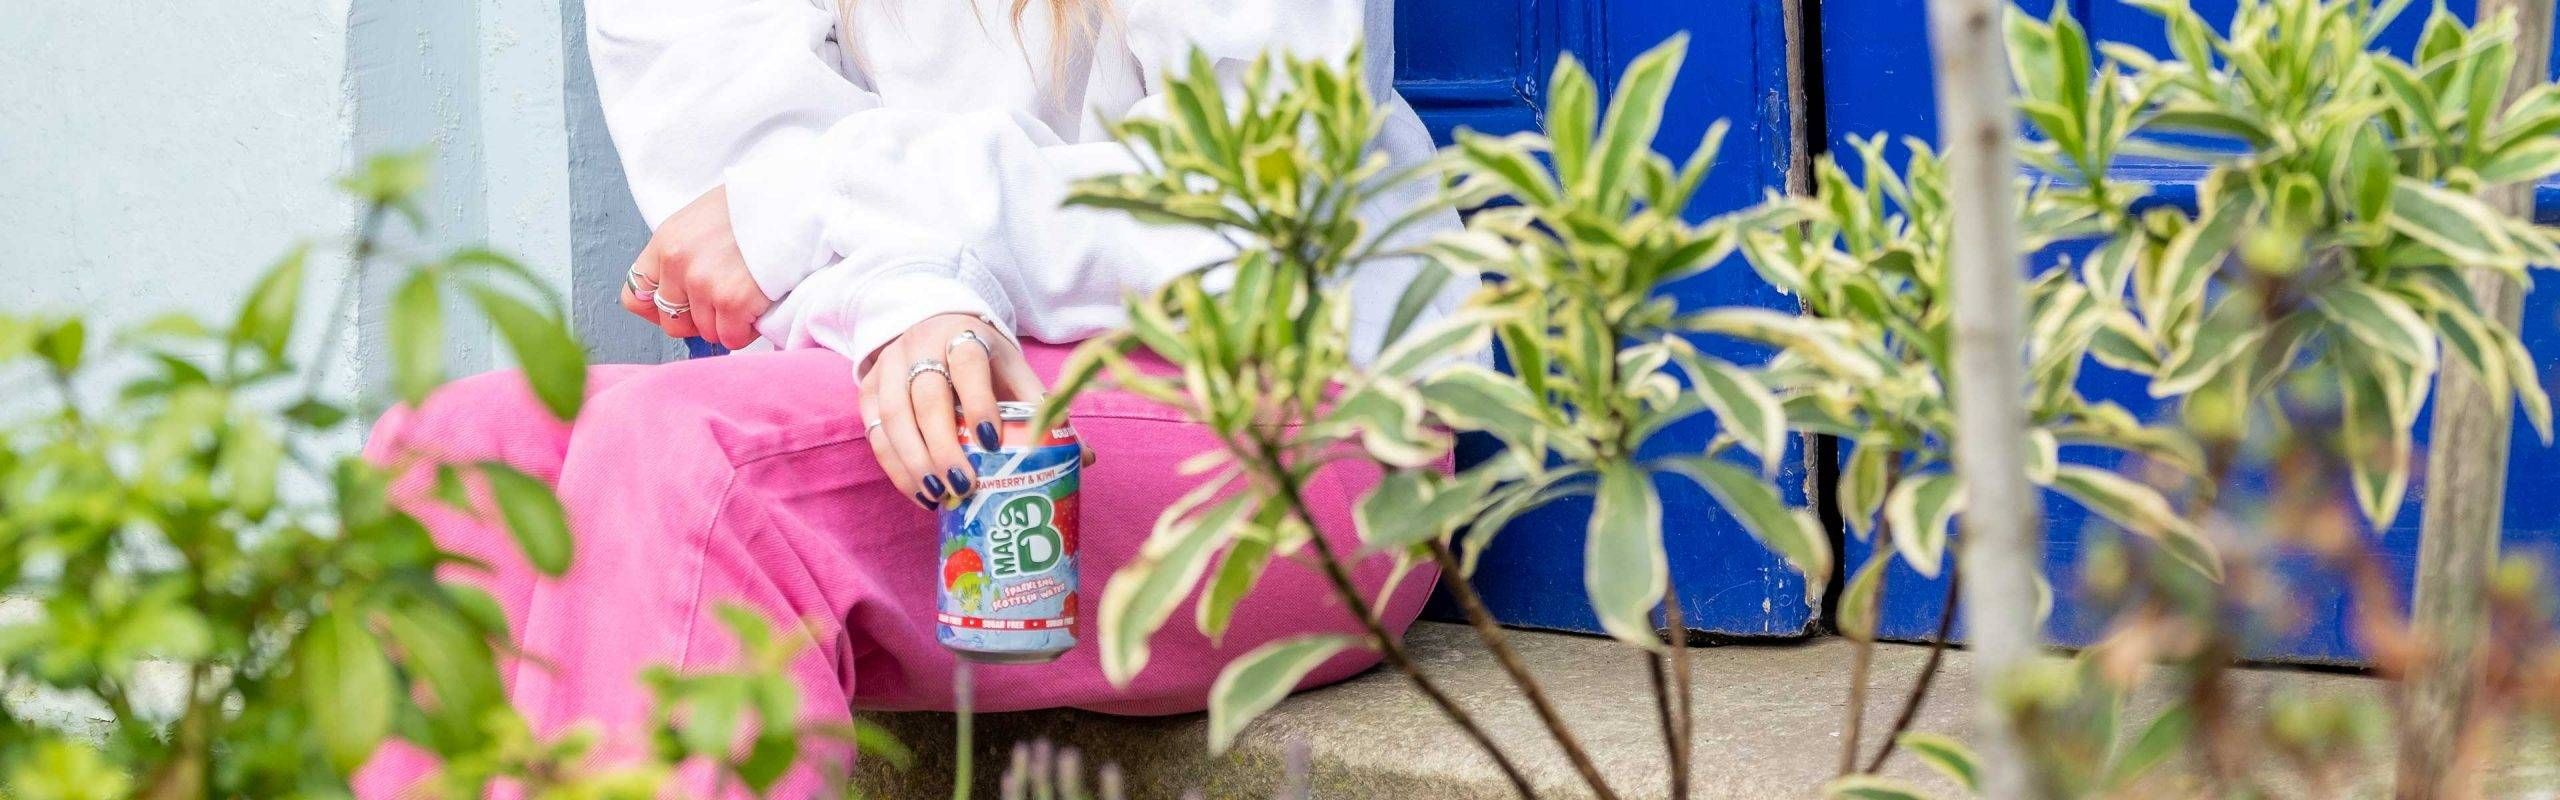 A woman sitting down by some flowers in purple trousers, drinking from a can of Macb flavoured sparkling spring water